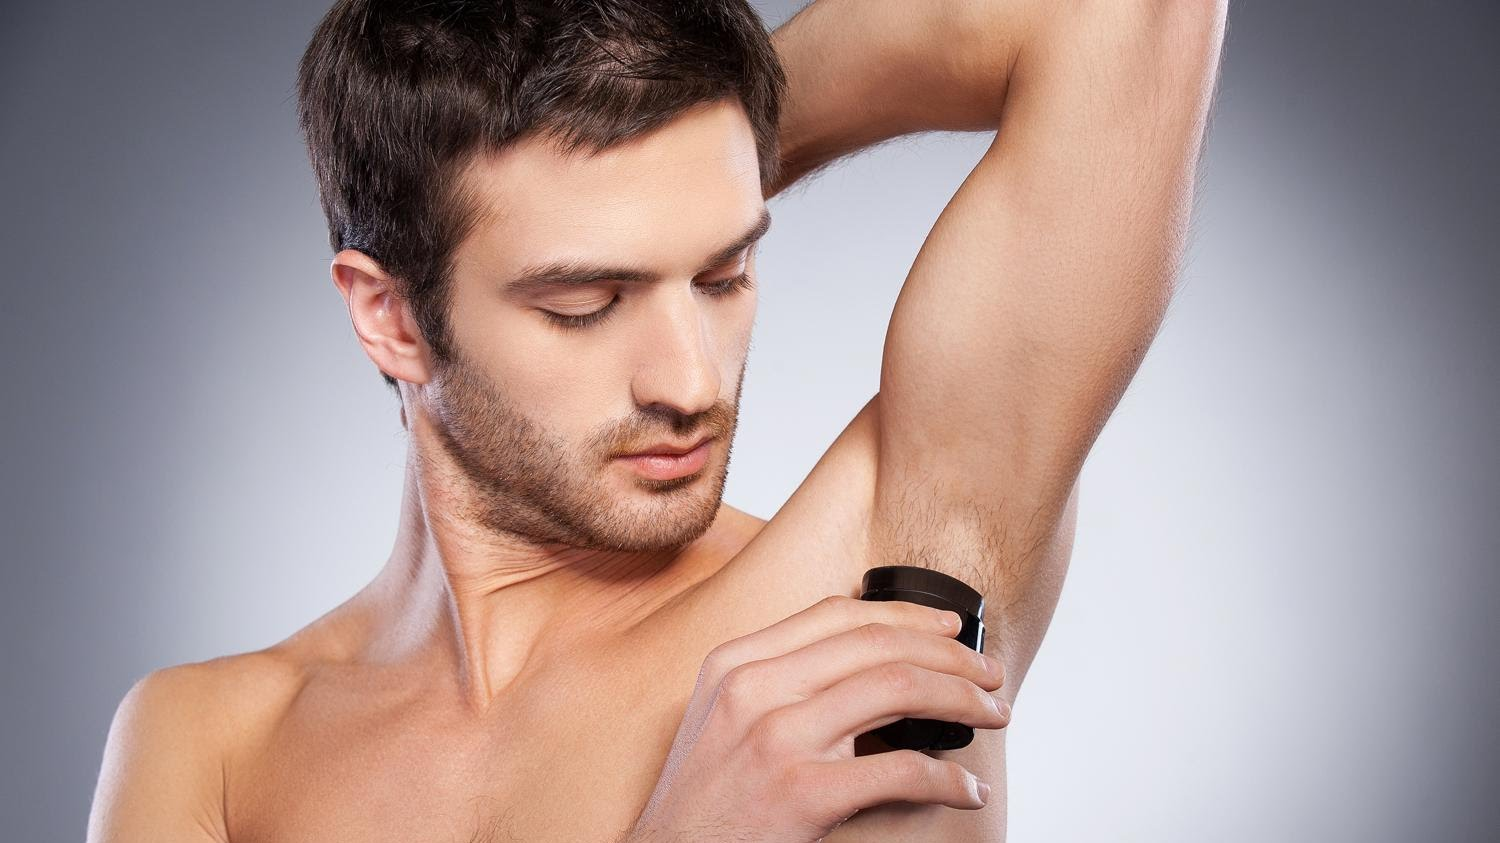 The Best Men S Deodorants And Anti Perspirants 2019 Stay Dry And